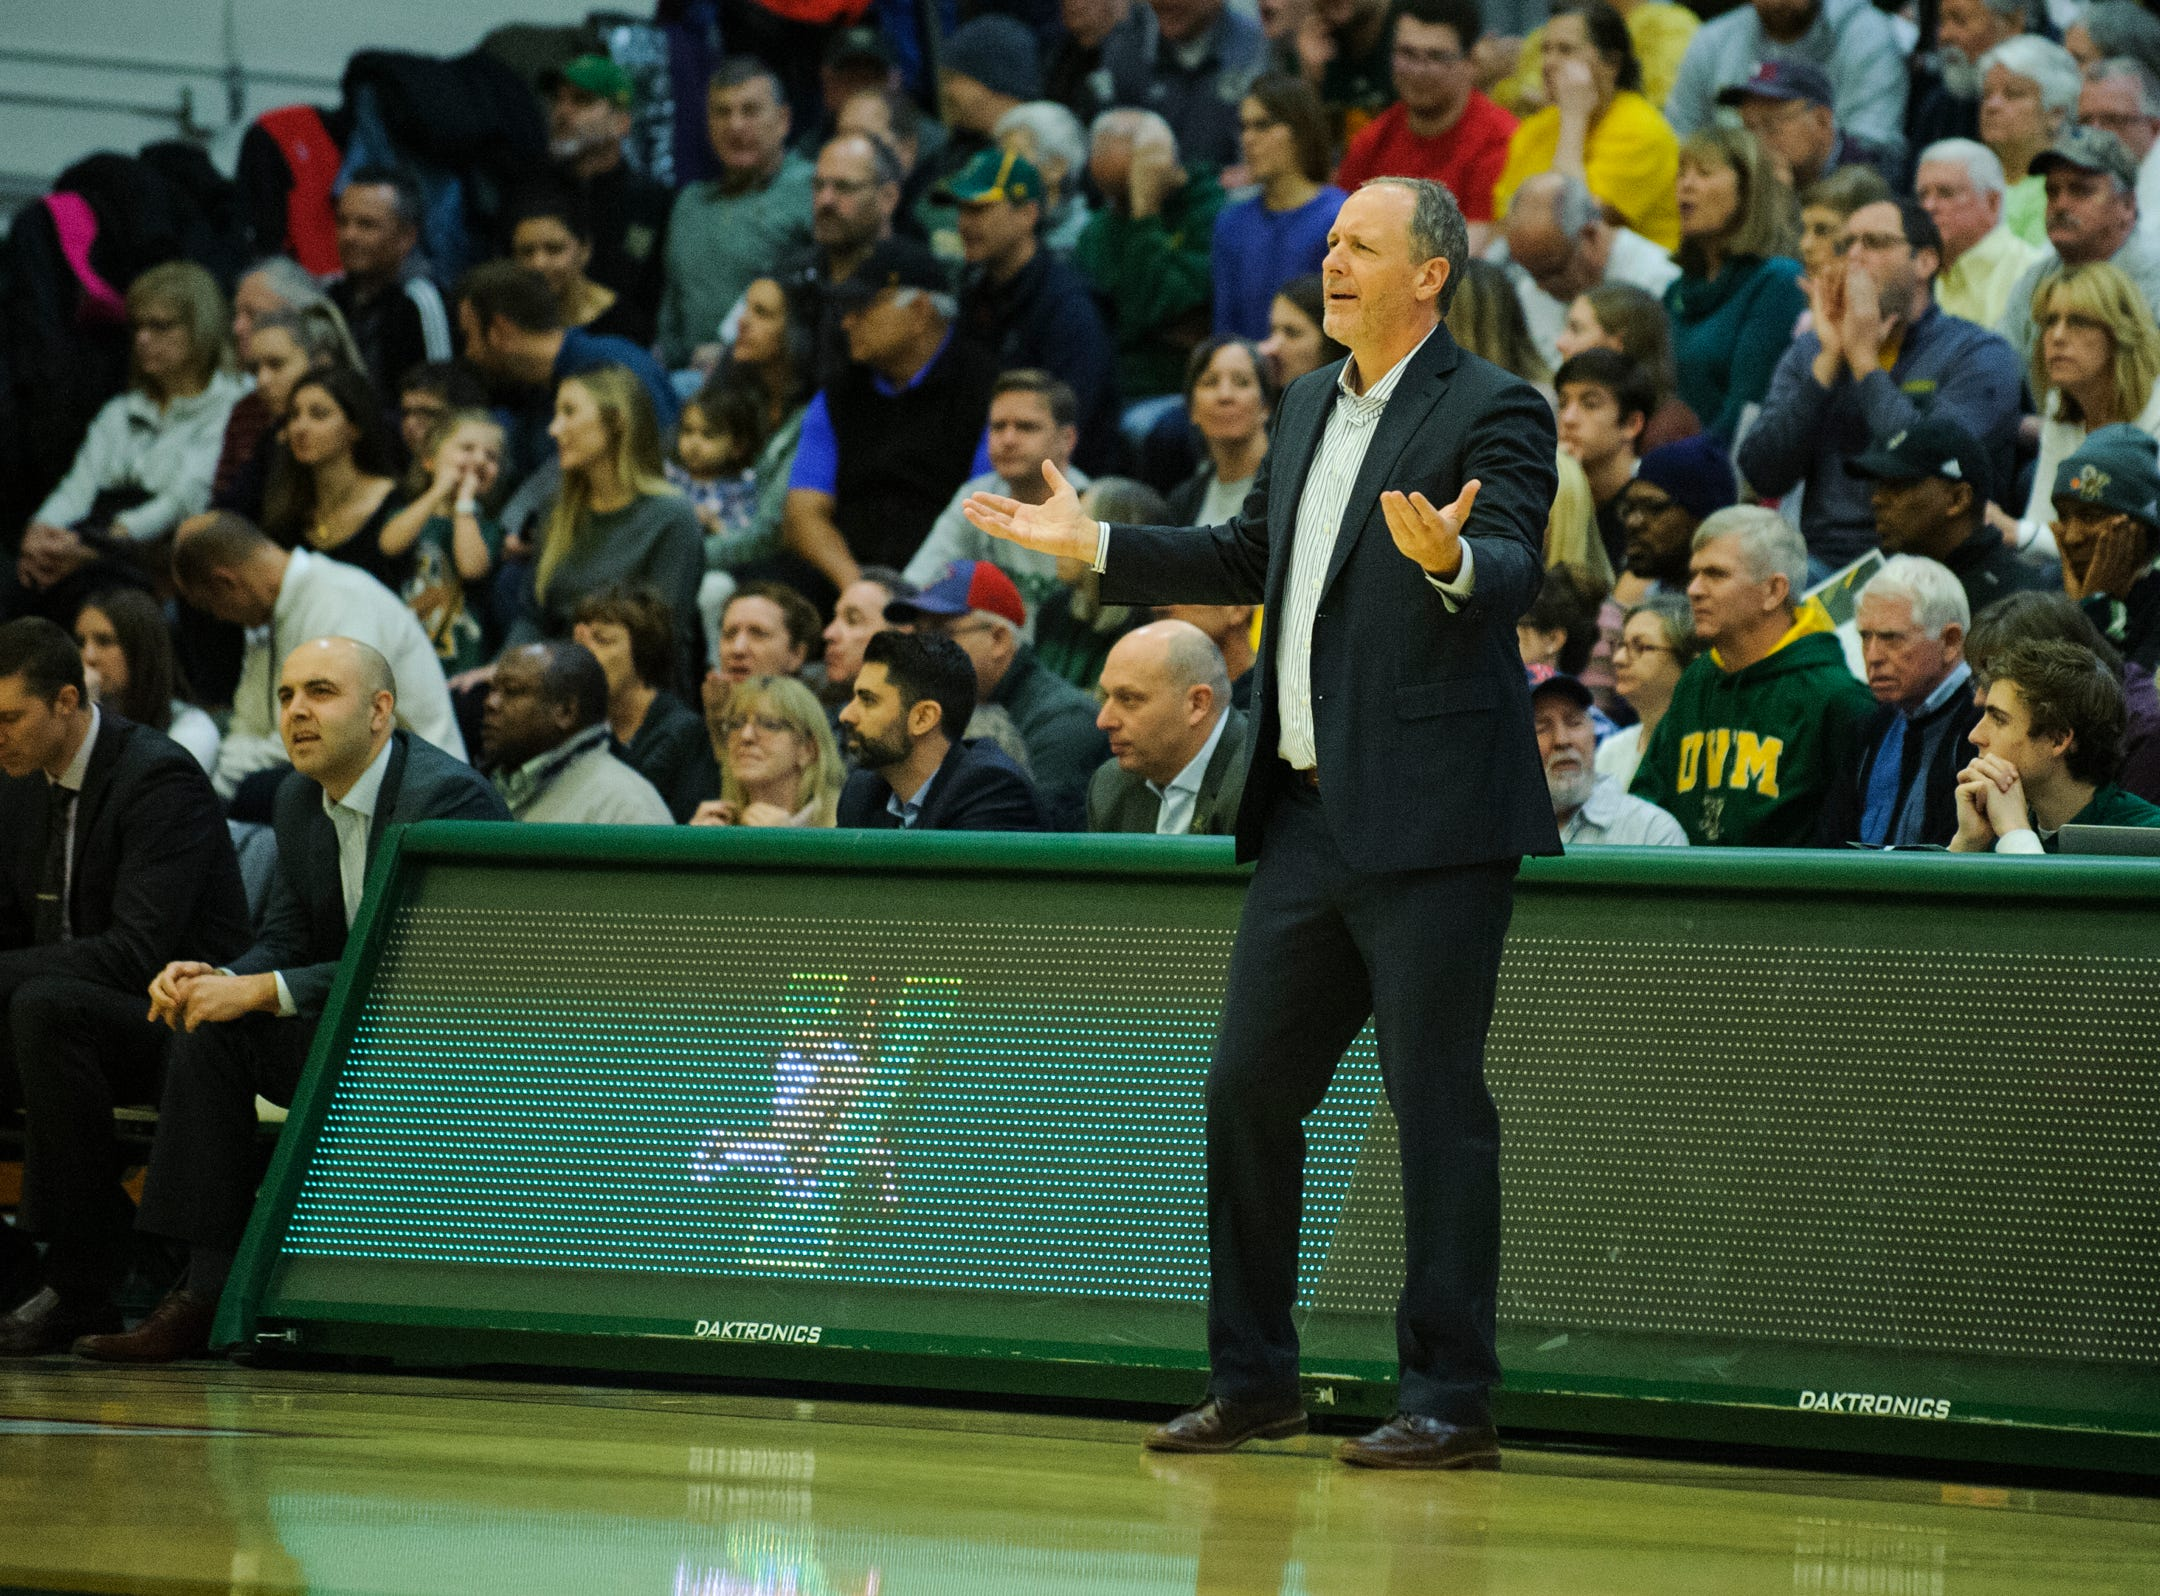 Vermont head coach John Becker questions a call on the court during the men's basketball game between the Bucknell Bison and the Vermont Catamounts at Patrick Gym on Sunday afternoon November 25, 2018 in Burlington.